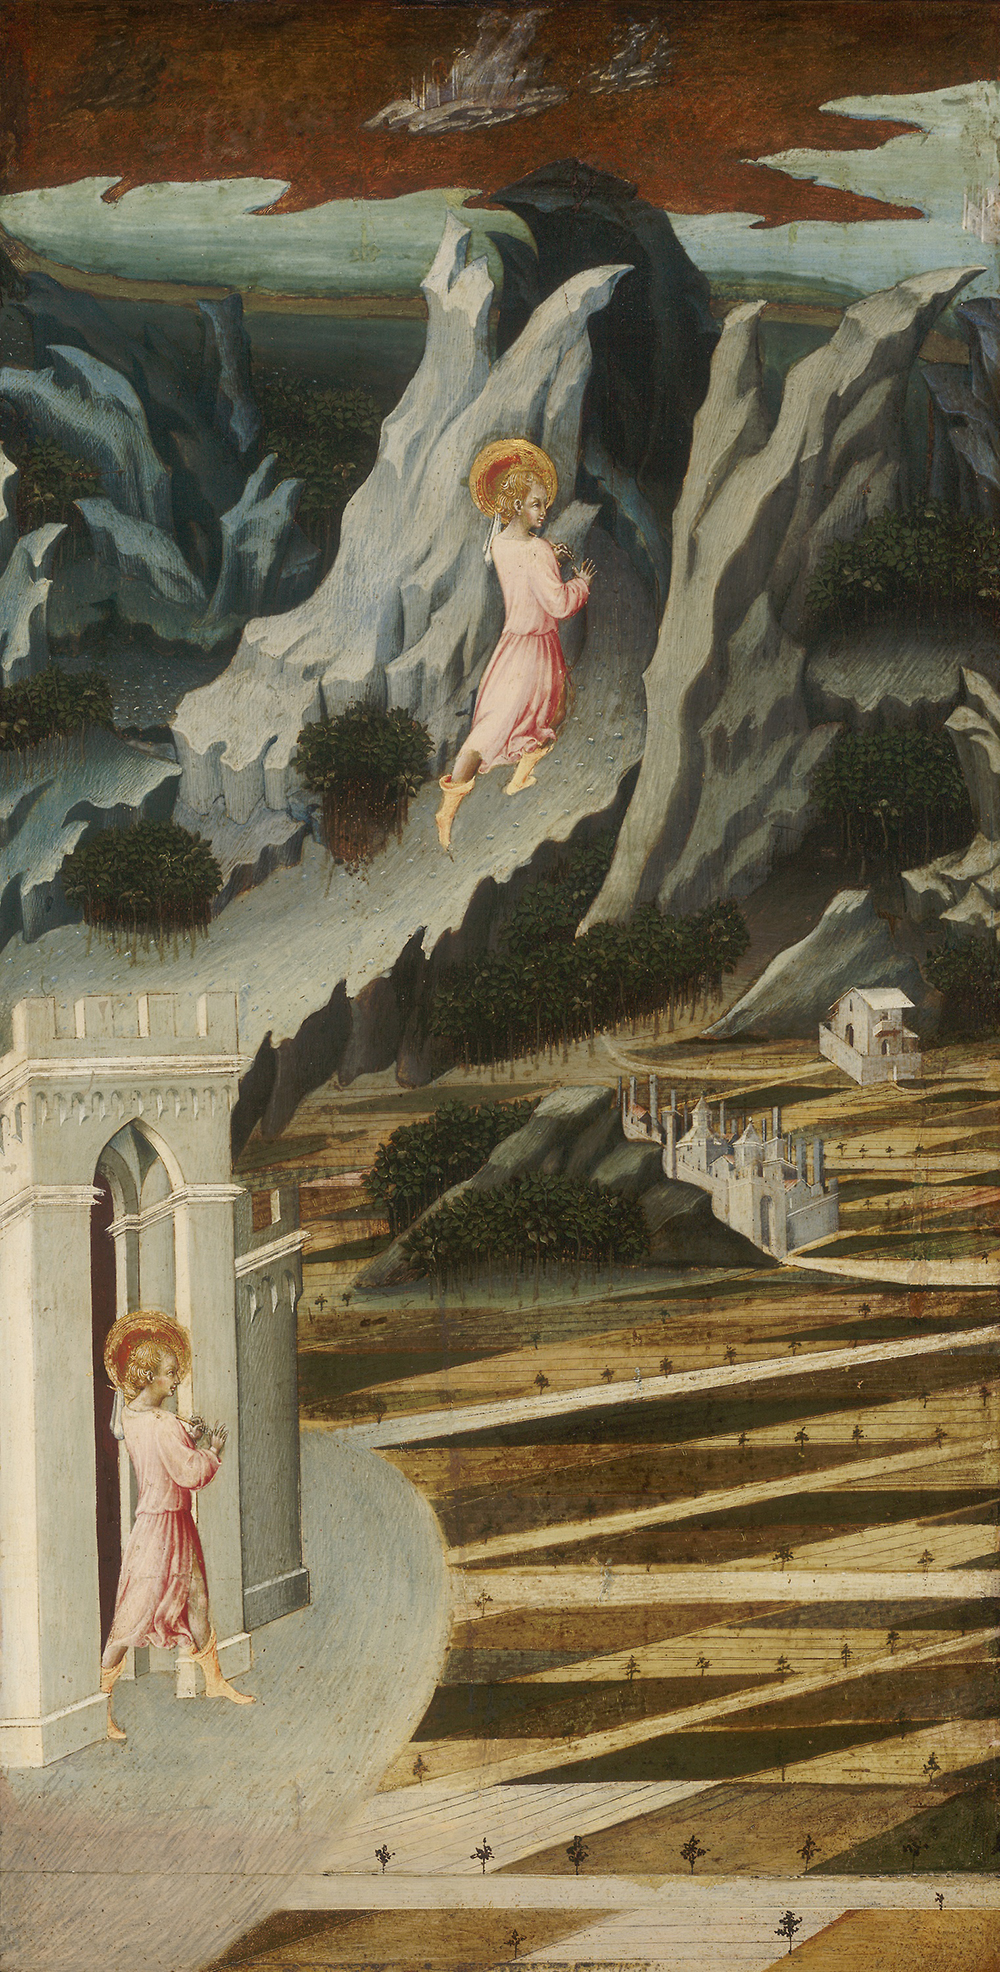 Saint John the Baptist Entering the Wilderness, by Giovanni di Paolo, c. 1455